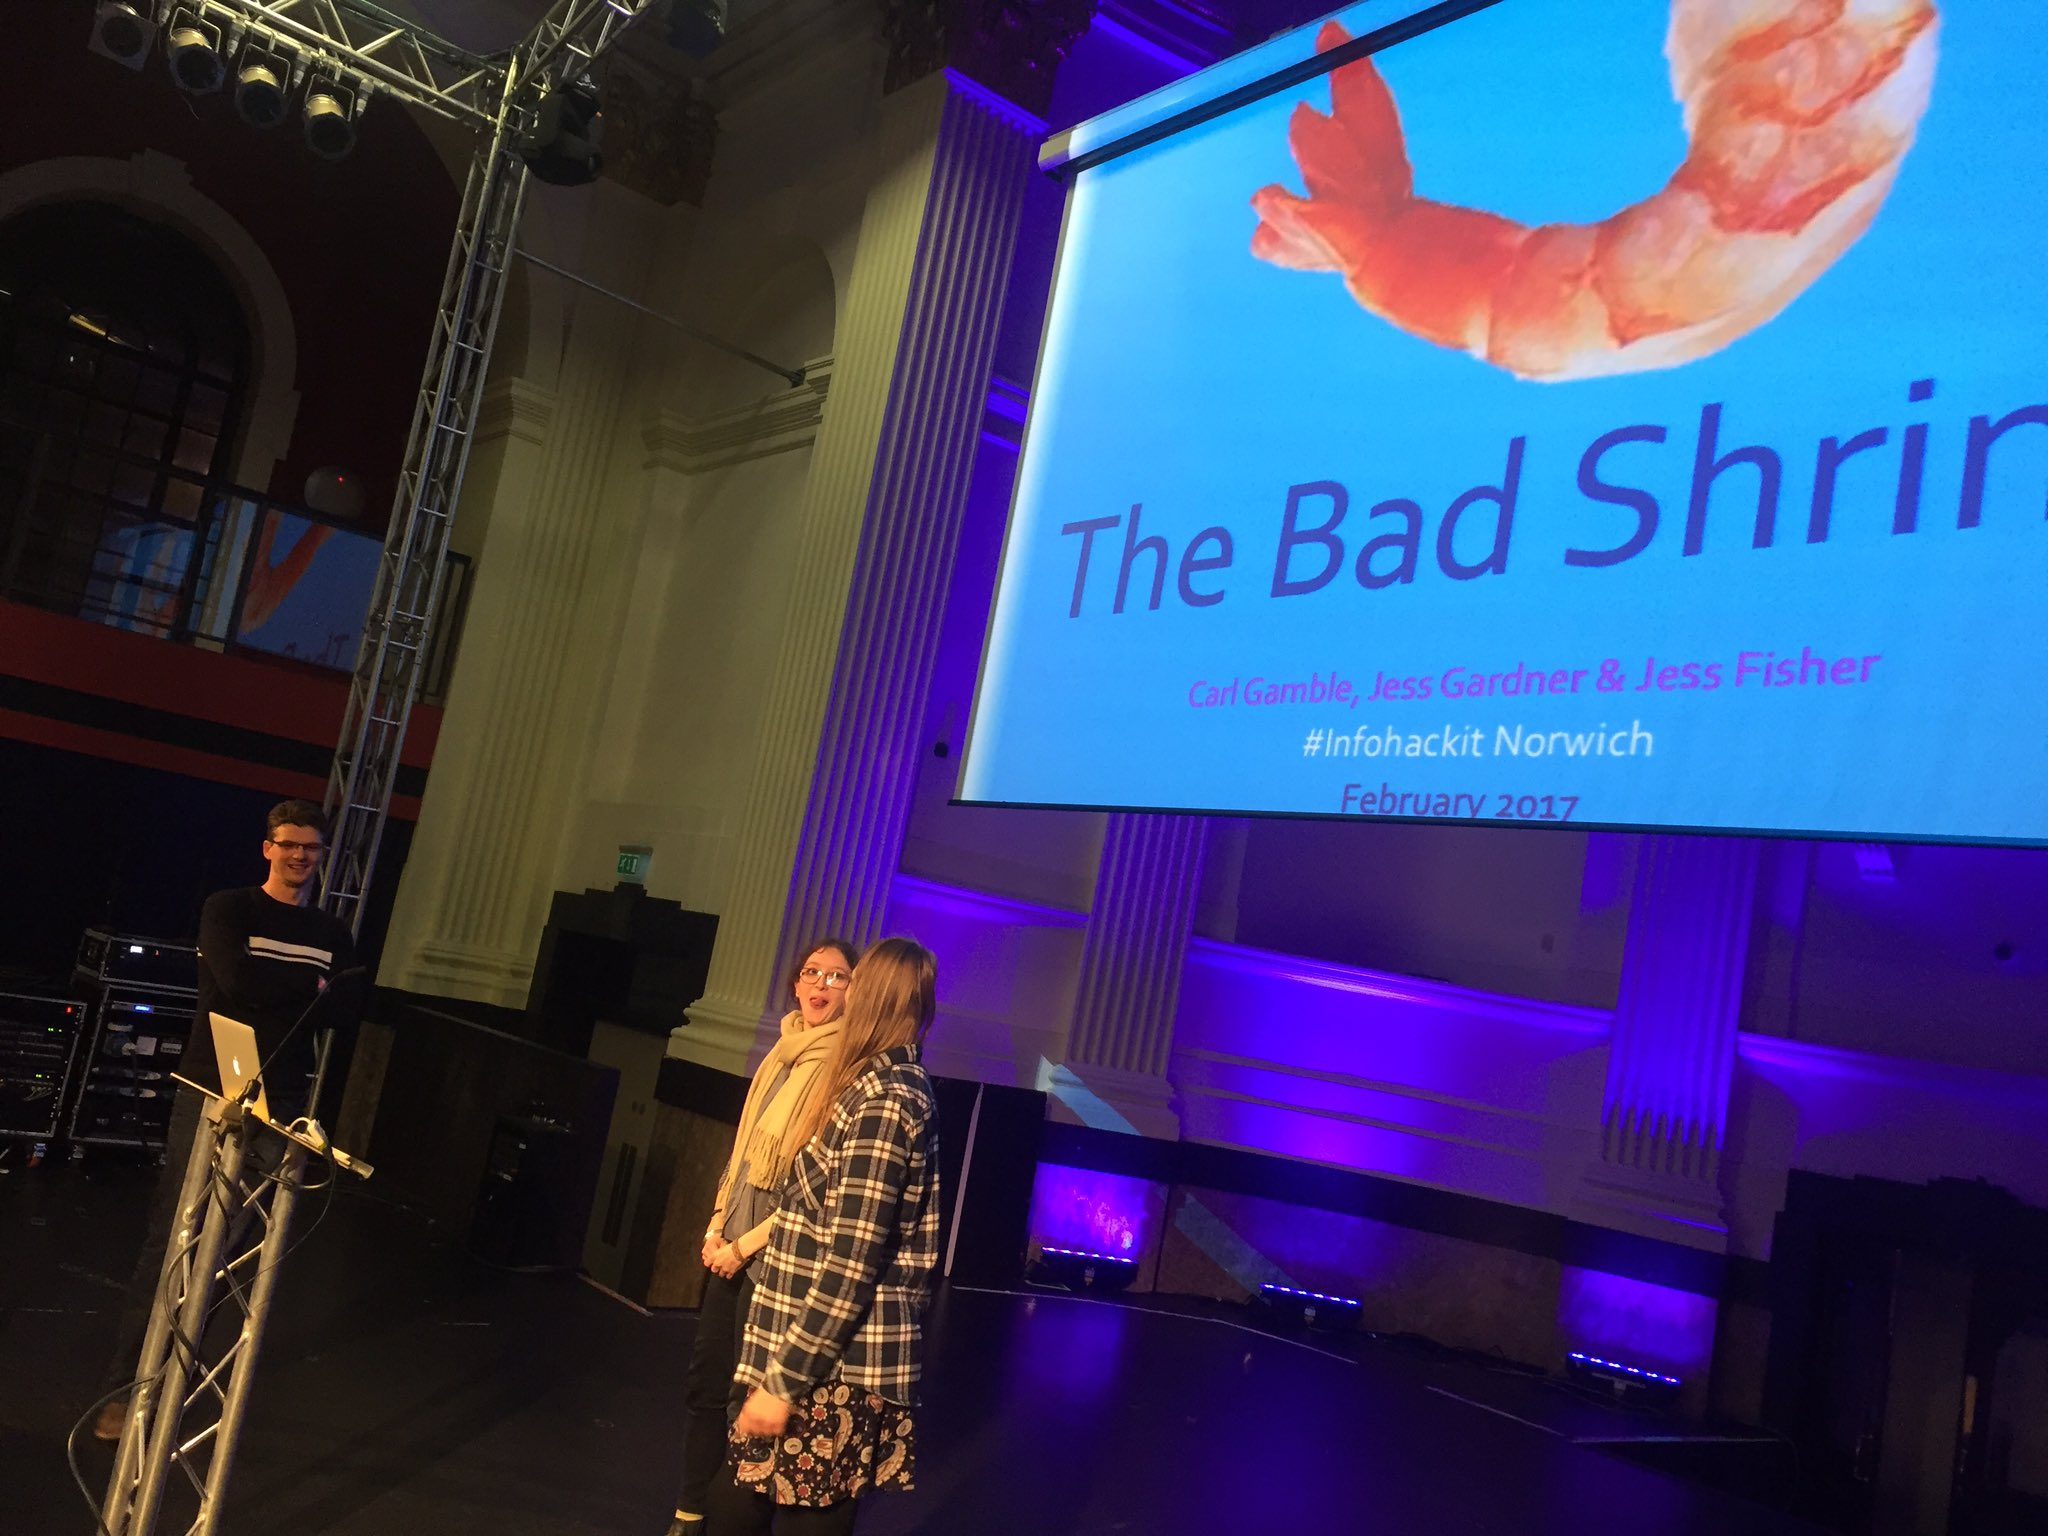 Last presentation - bad shrimp! #infohackit https://t.co/4ND9BXpabH